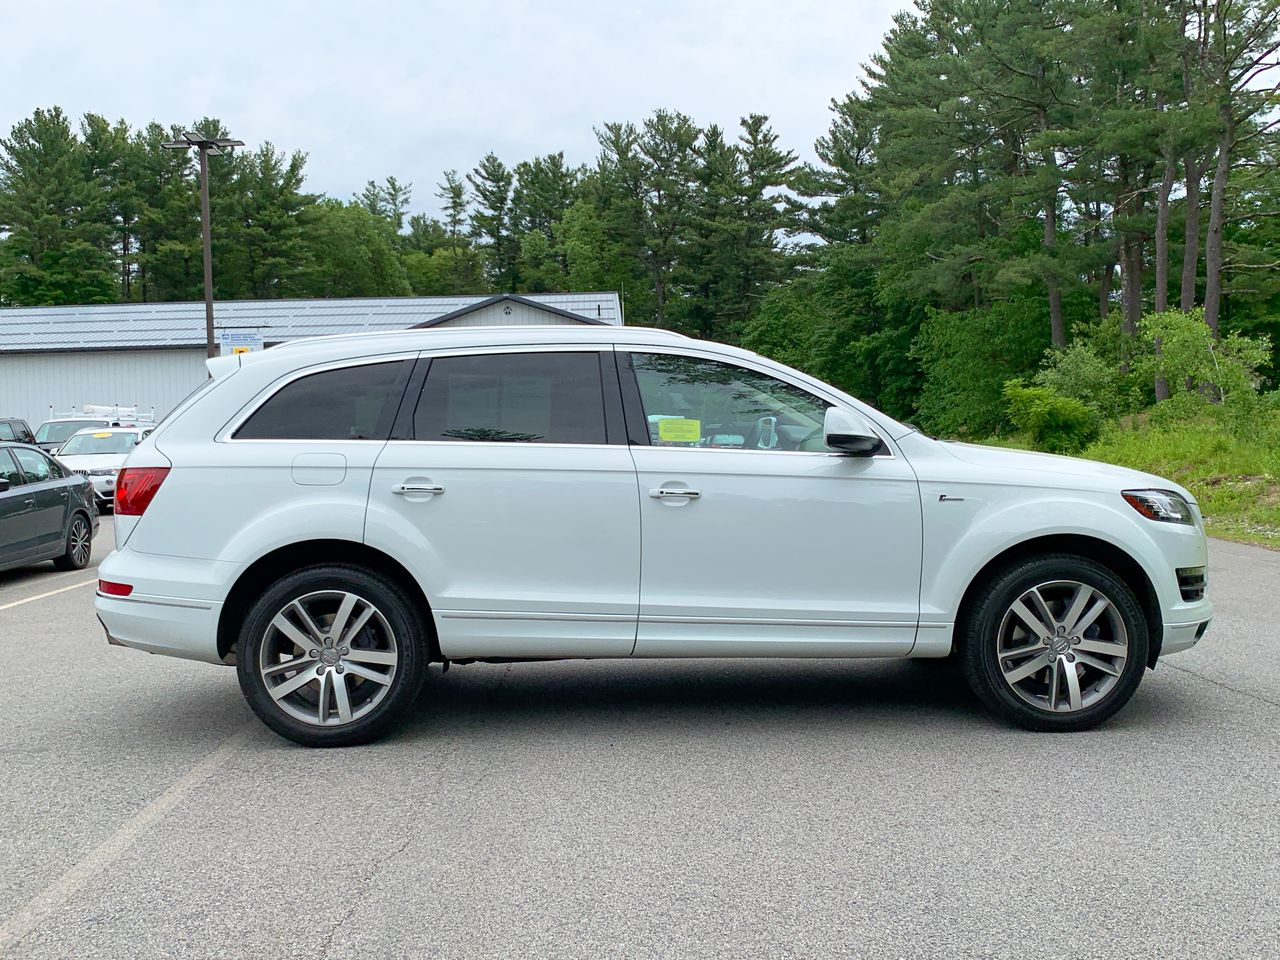 Used 2015 Audi Q7 For Sale | Tyngsboro Ma, Lowell, MA and